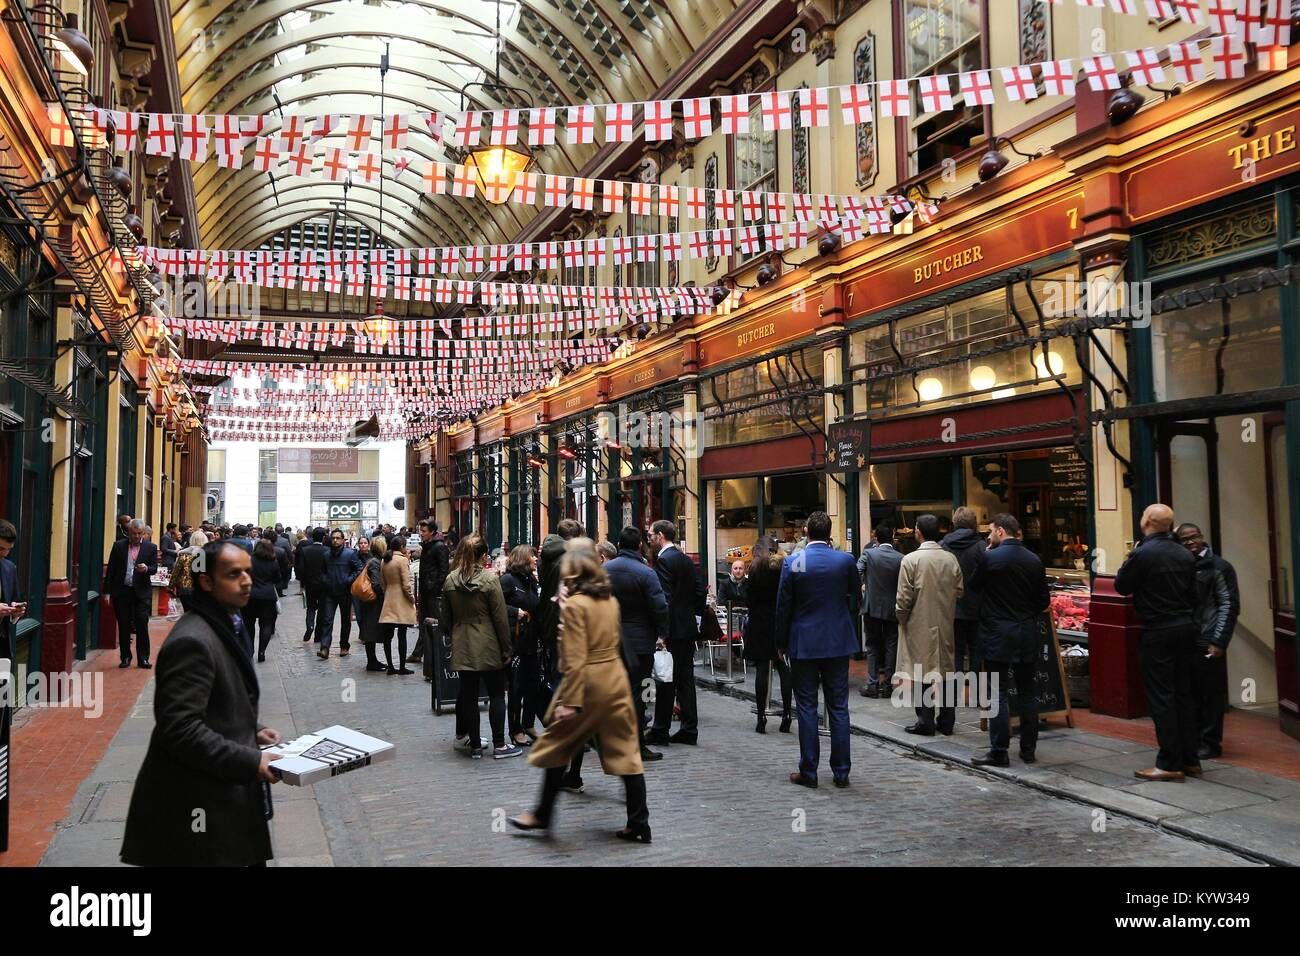 LONDON, UK - APRIL 22, 2016: People celebrate Saint George's Day in Leadenhall Market, London. Saint George - Stock Image